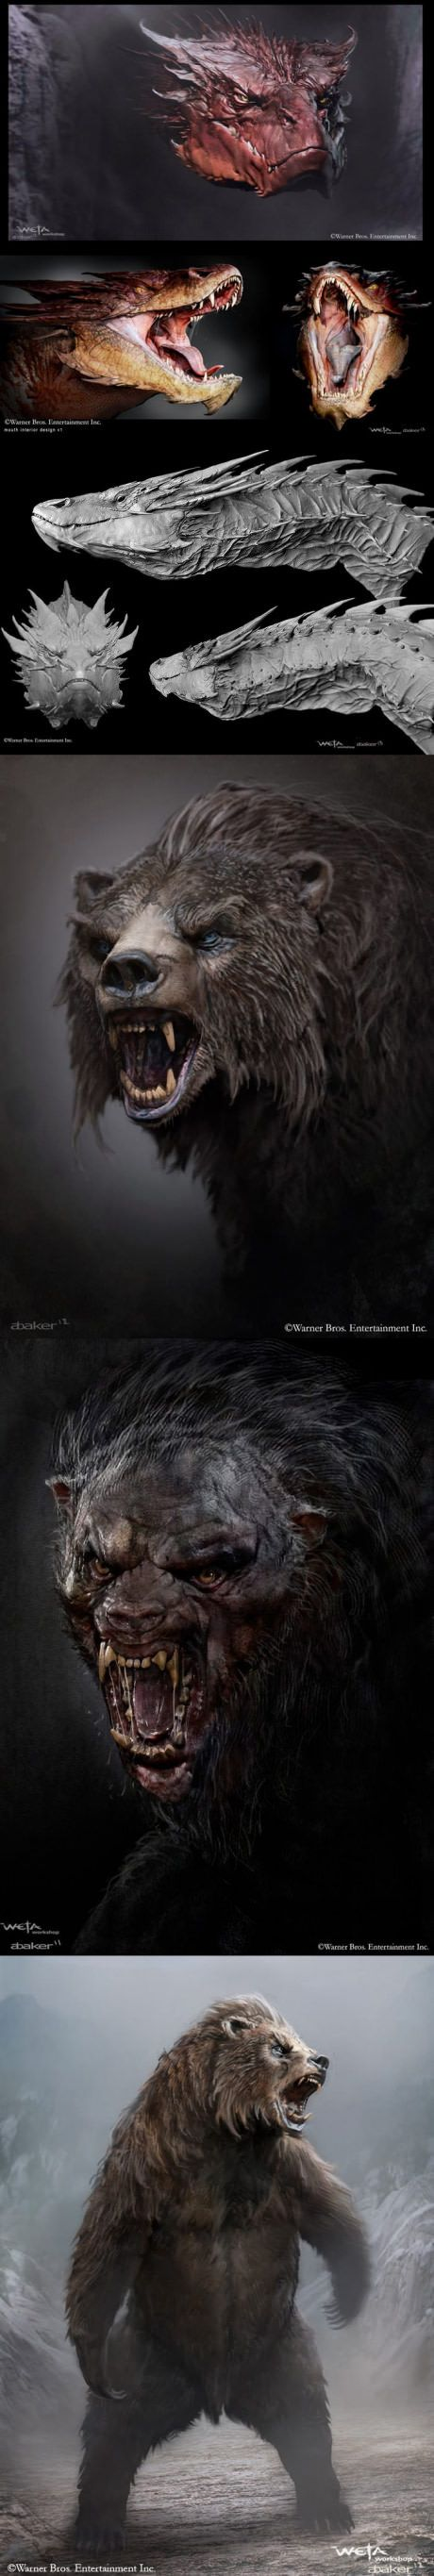 Concept art for Smaug and Beorn by Andrew Baker in The Hobbit.